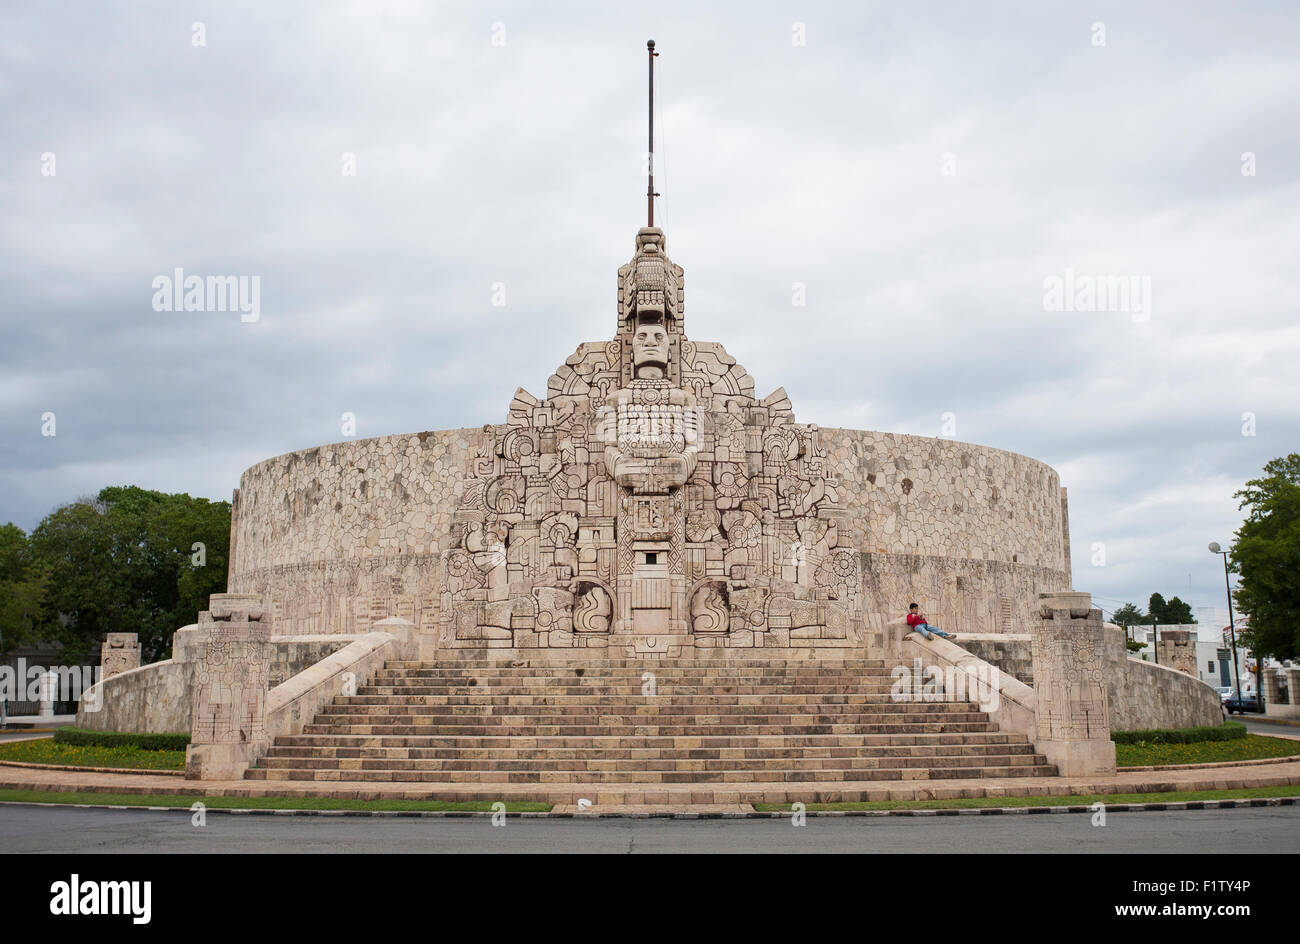 Resting place: No flag on the Monument to the Mexican Flag . A grand sculpture and fountain in the center of Merida - Stock Image